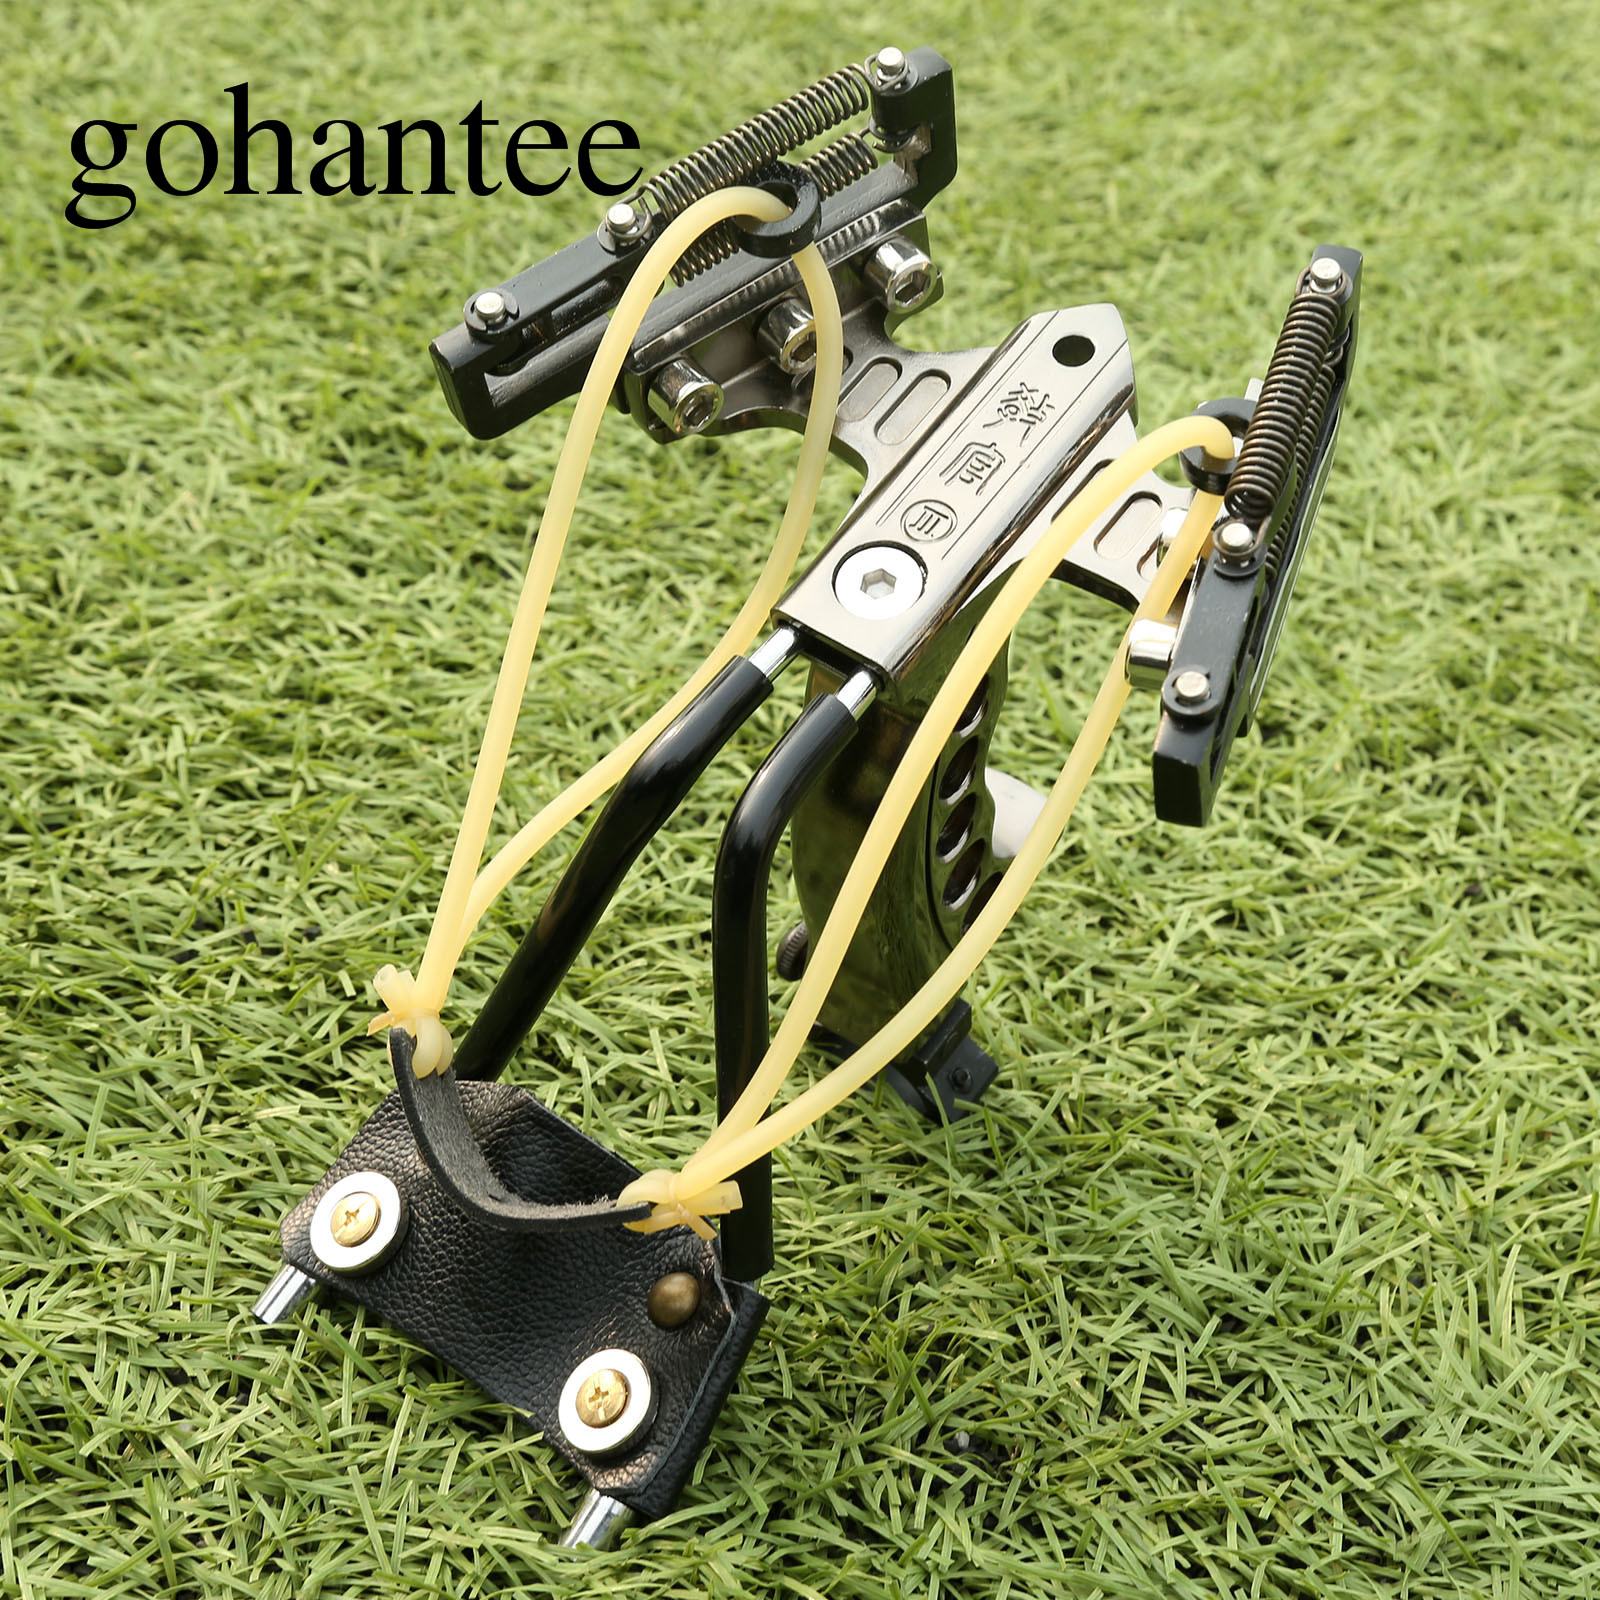 gohantee Tactical Heavy Duty Stainless Steel Slingshot with 4 Spring Wrist Brace Sling Shots Outdoor Hunting Slingshots Catapult рубашки